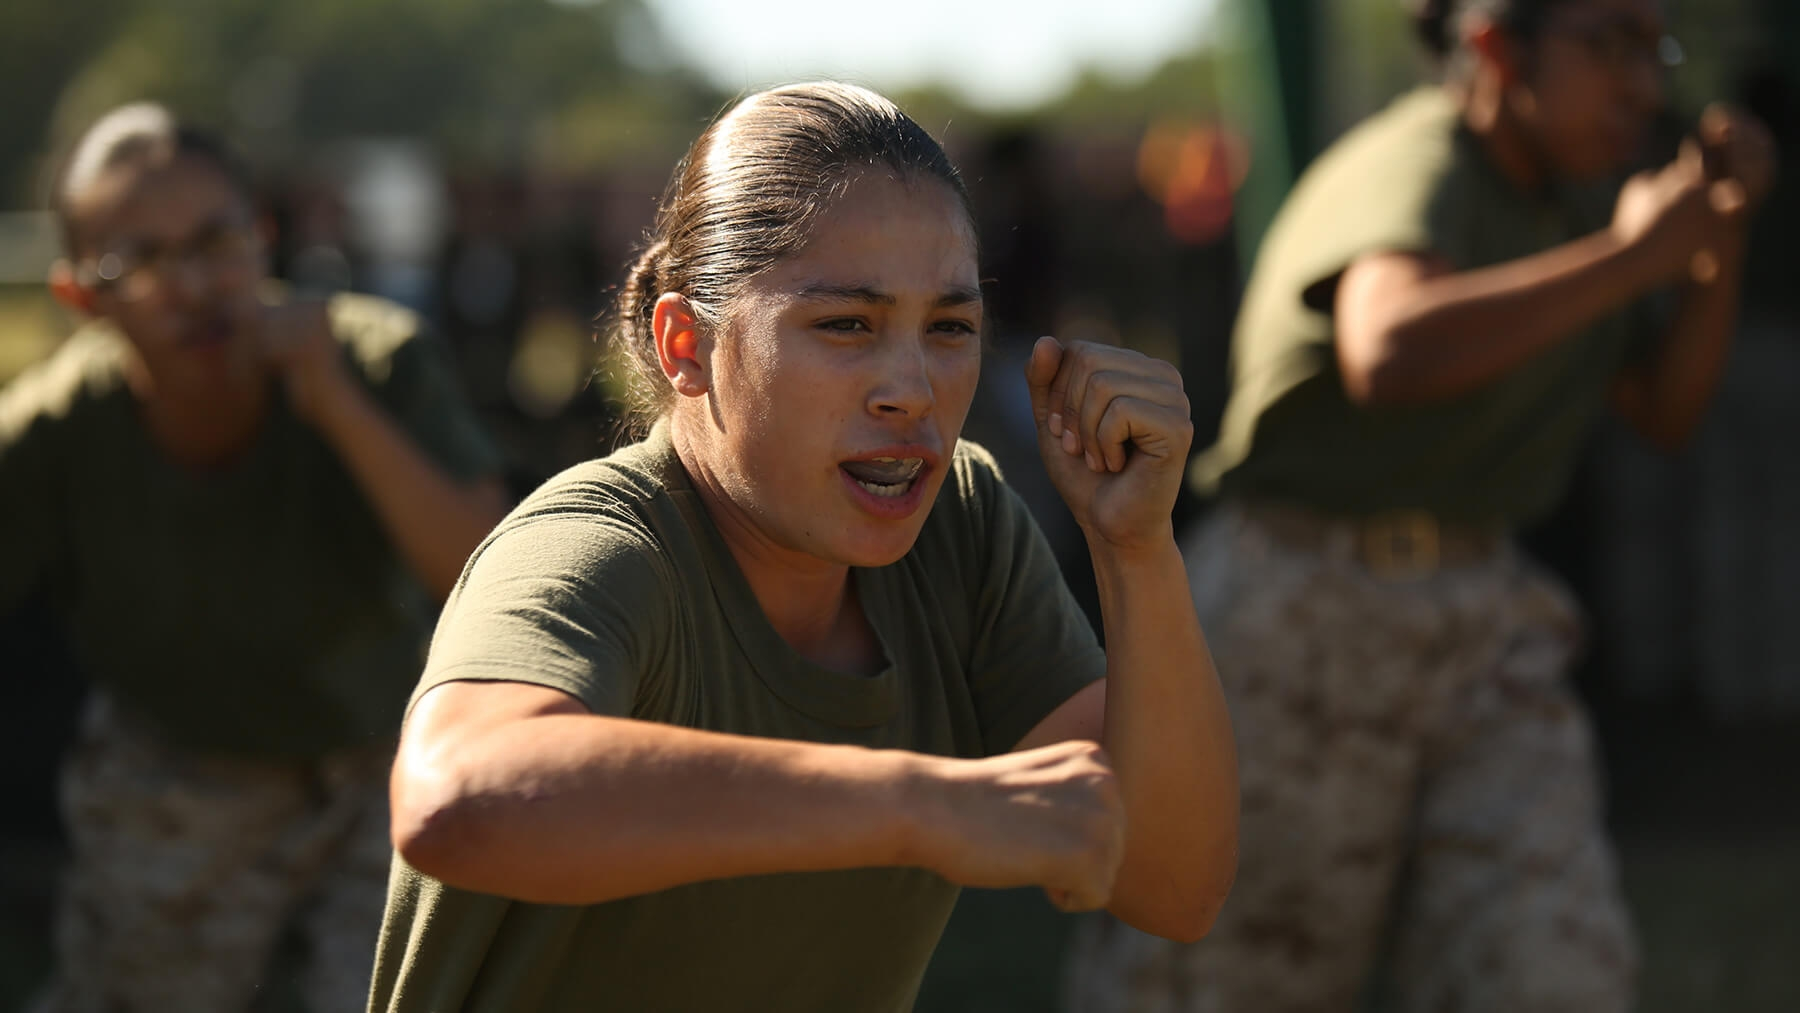 Marine physical exercise